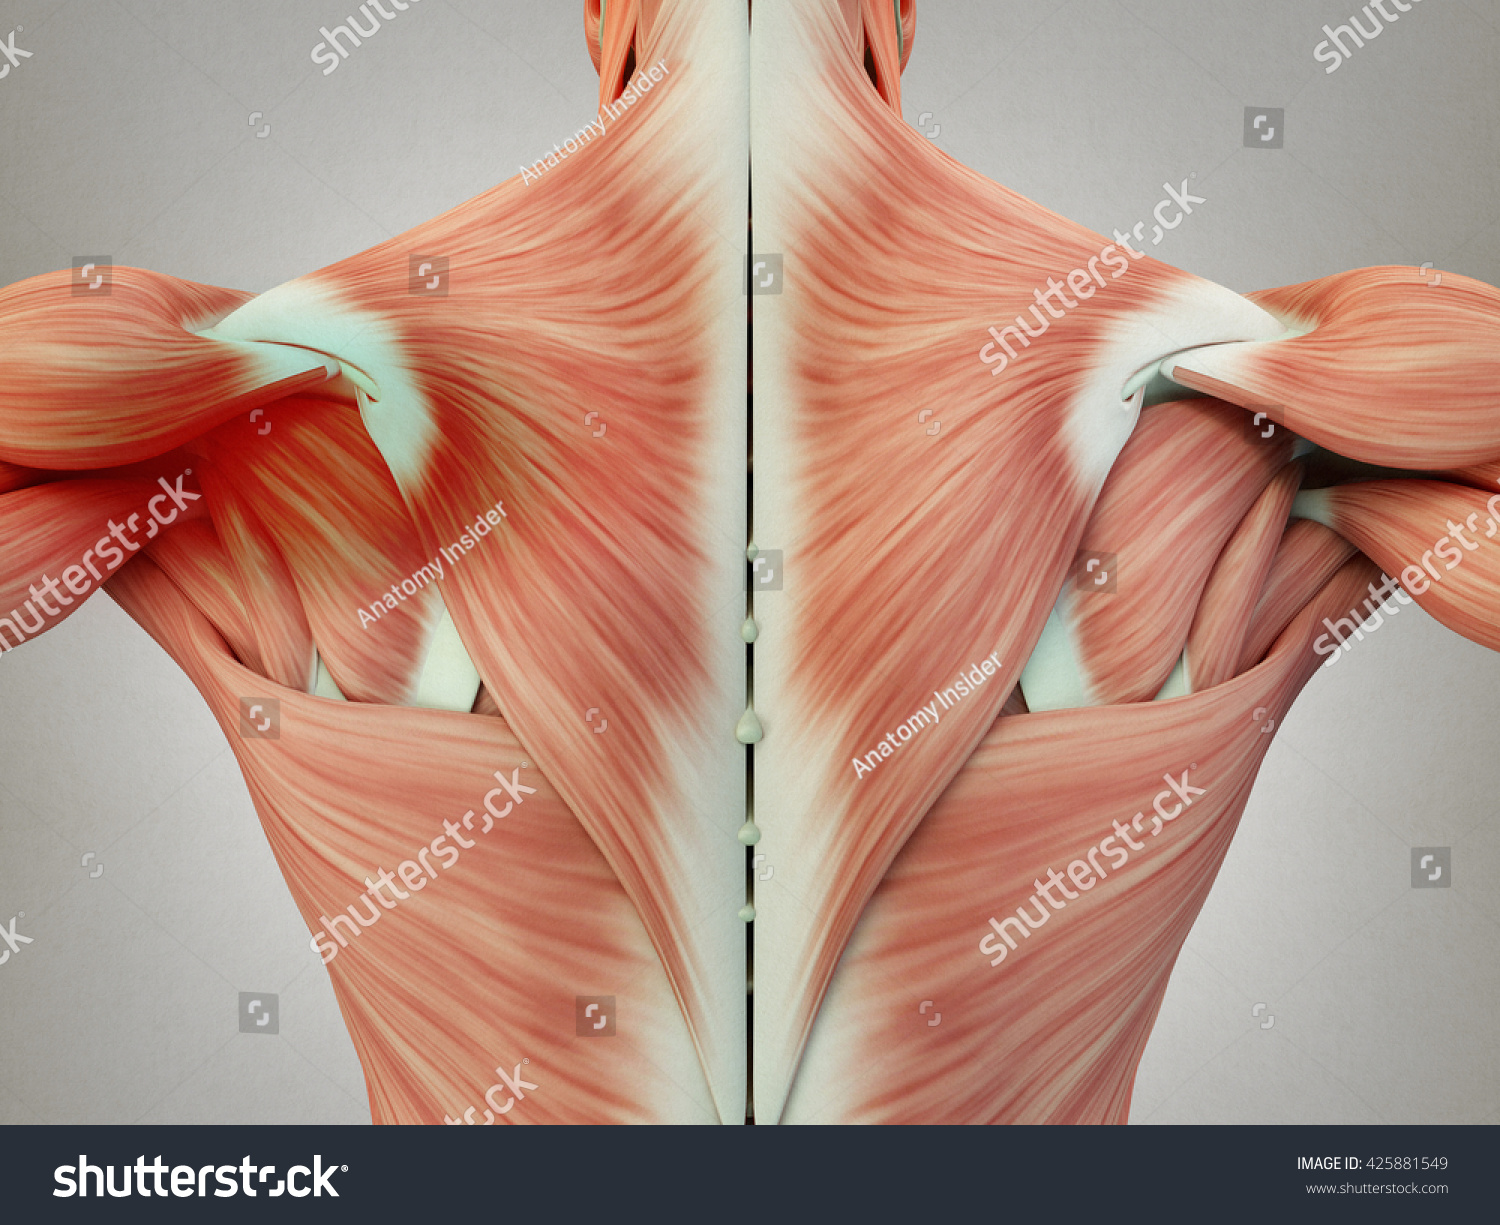 Human Anatomy Torso Back Muscles Pain Stock Illustration 425881549 ...